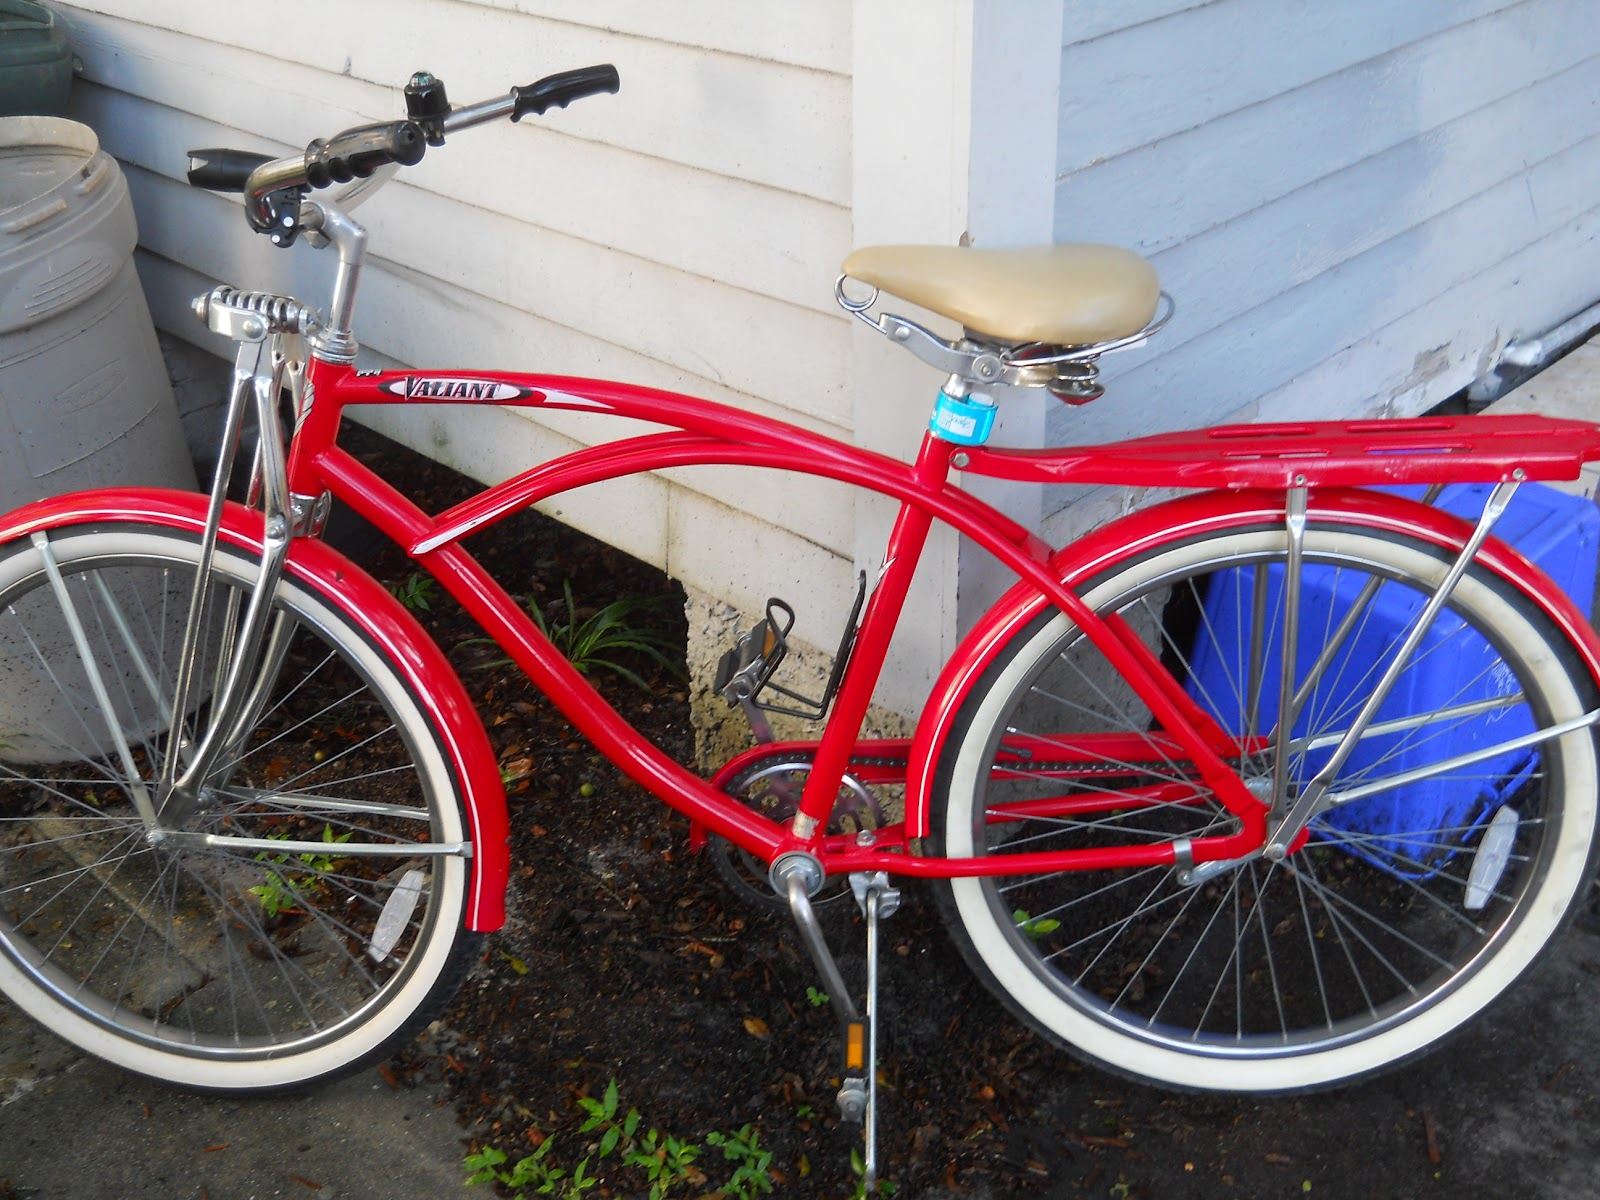 Bikes On Craigslist Okeechobee Fl Pee Wee Herman Bicycle For